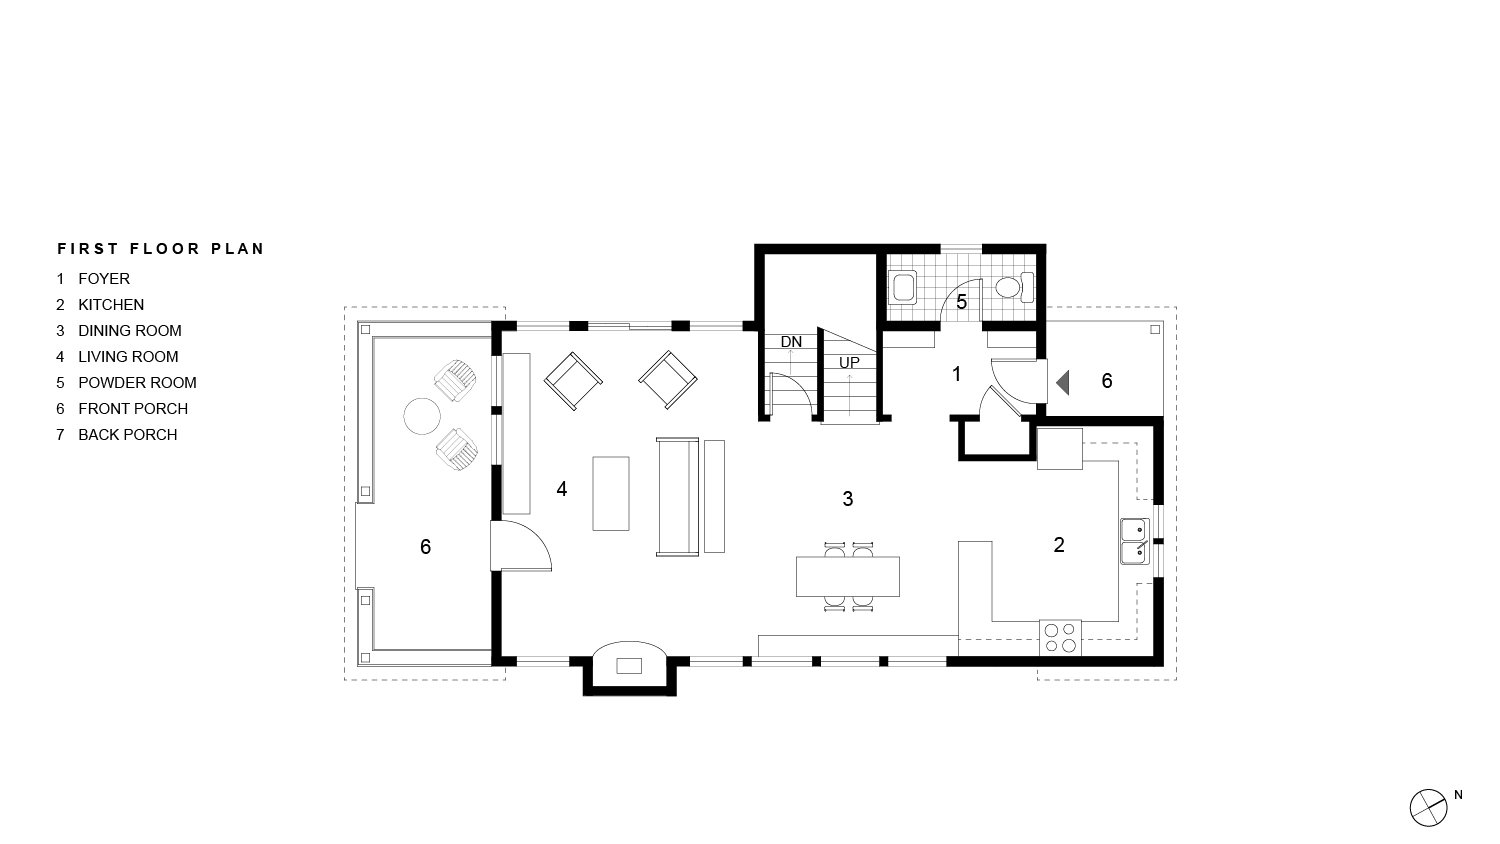 Sawkill Ave First Floor Plan